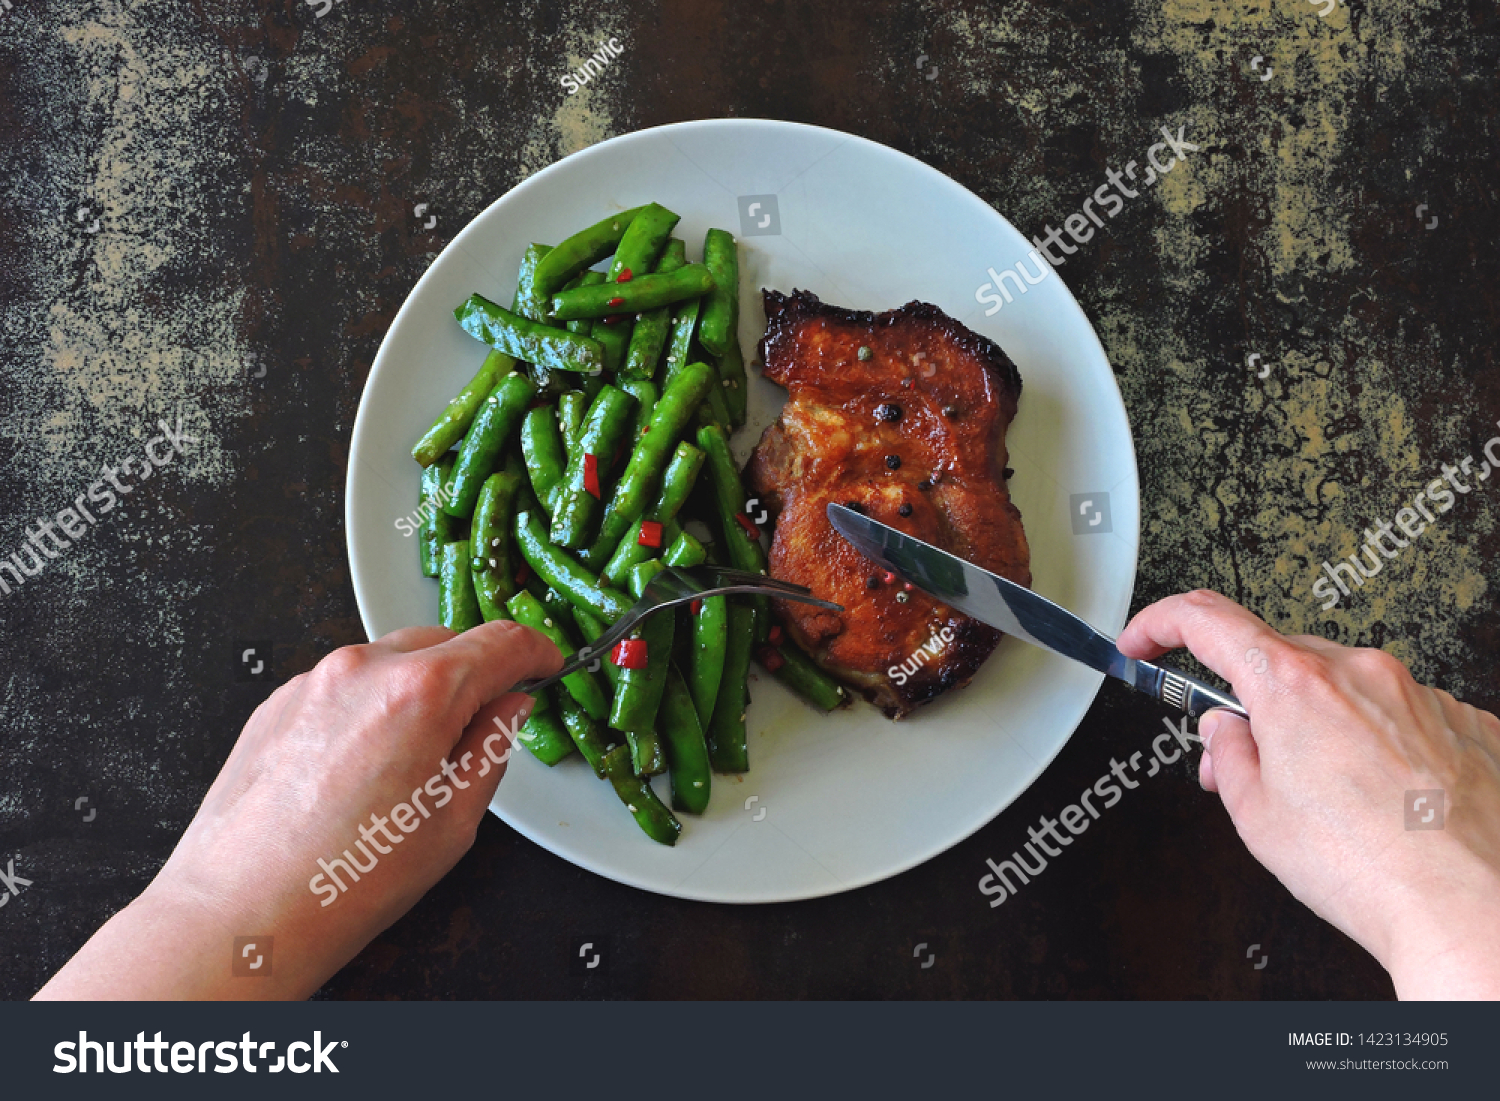 Green pea pods and pork steak on a plate. Balanced nutrition concept. Keto diet. Paleo diet. Pegan Diet. #1423134905